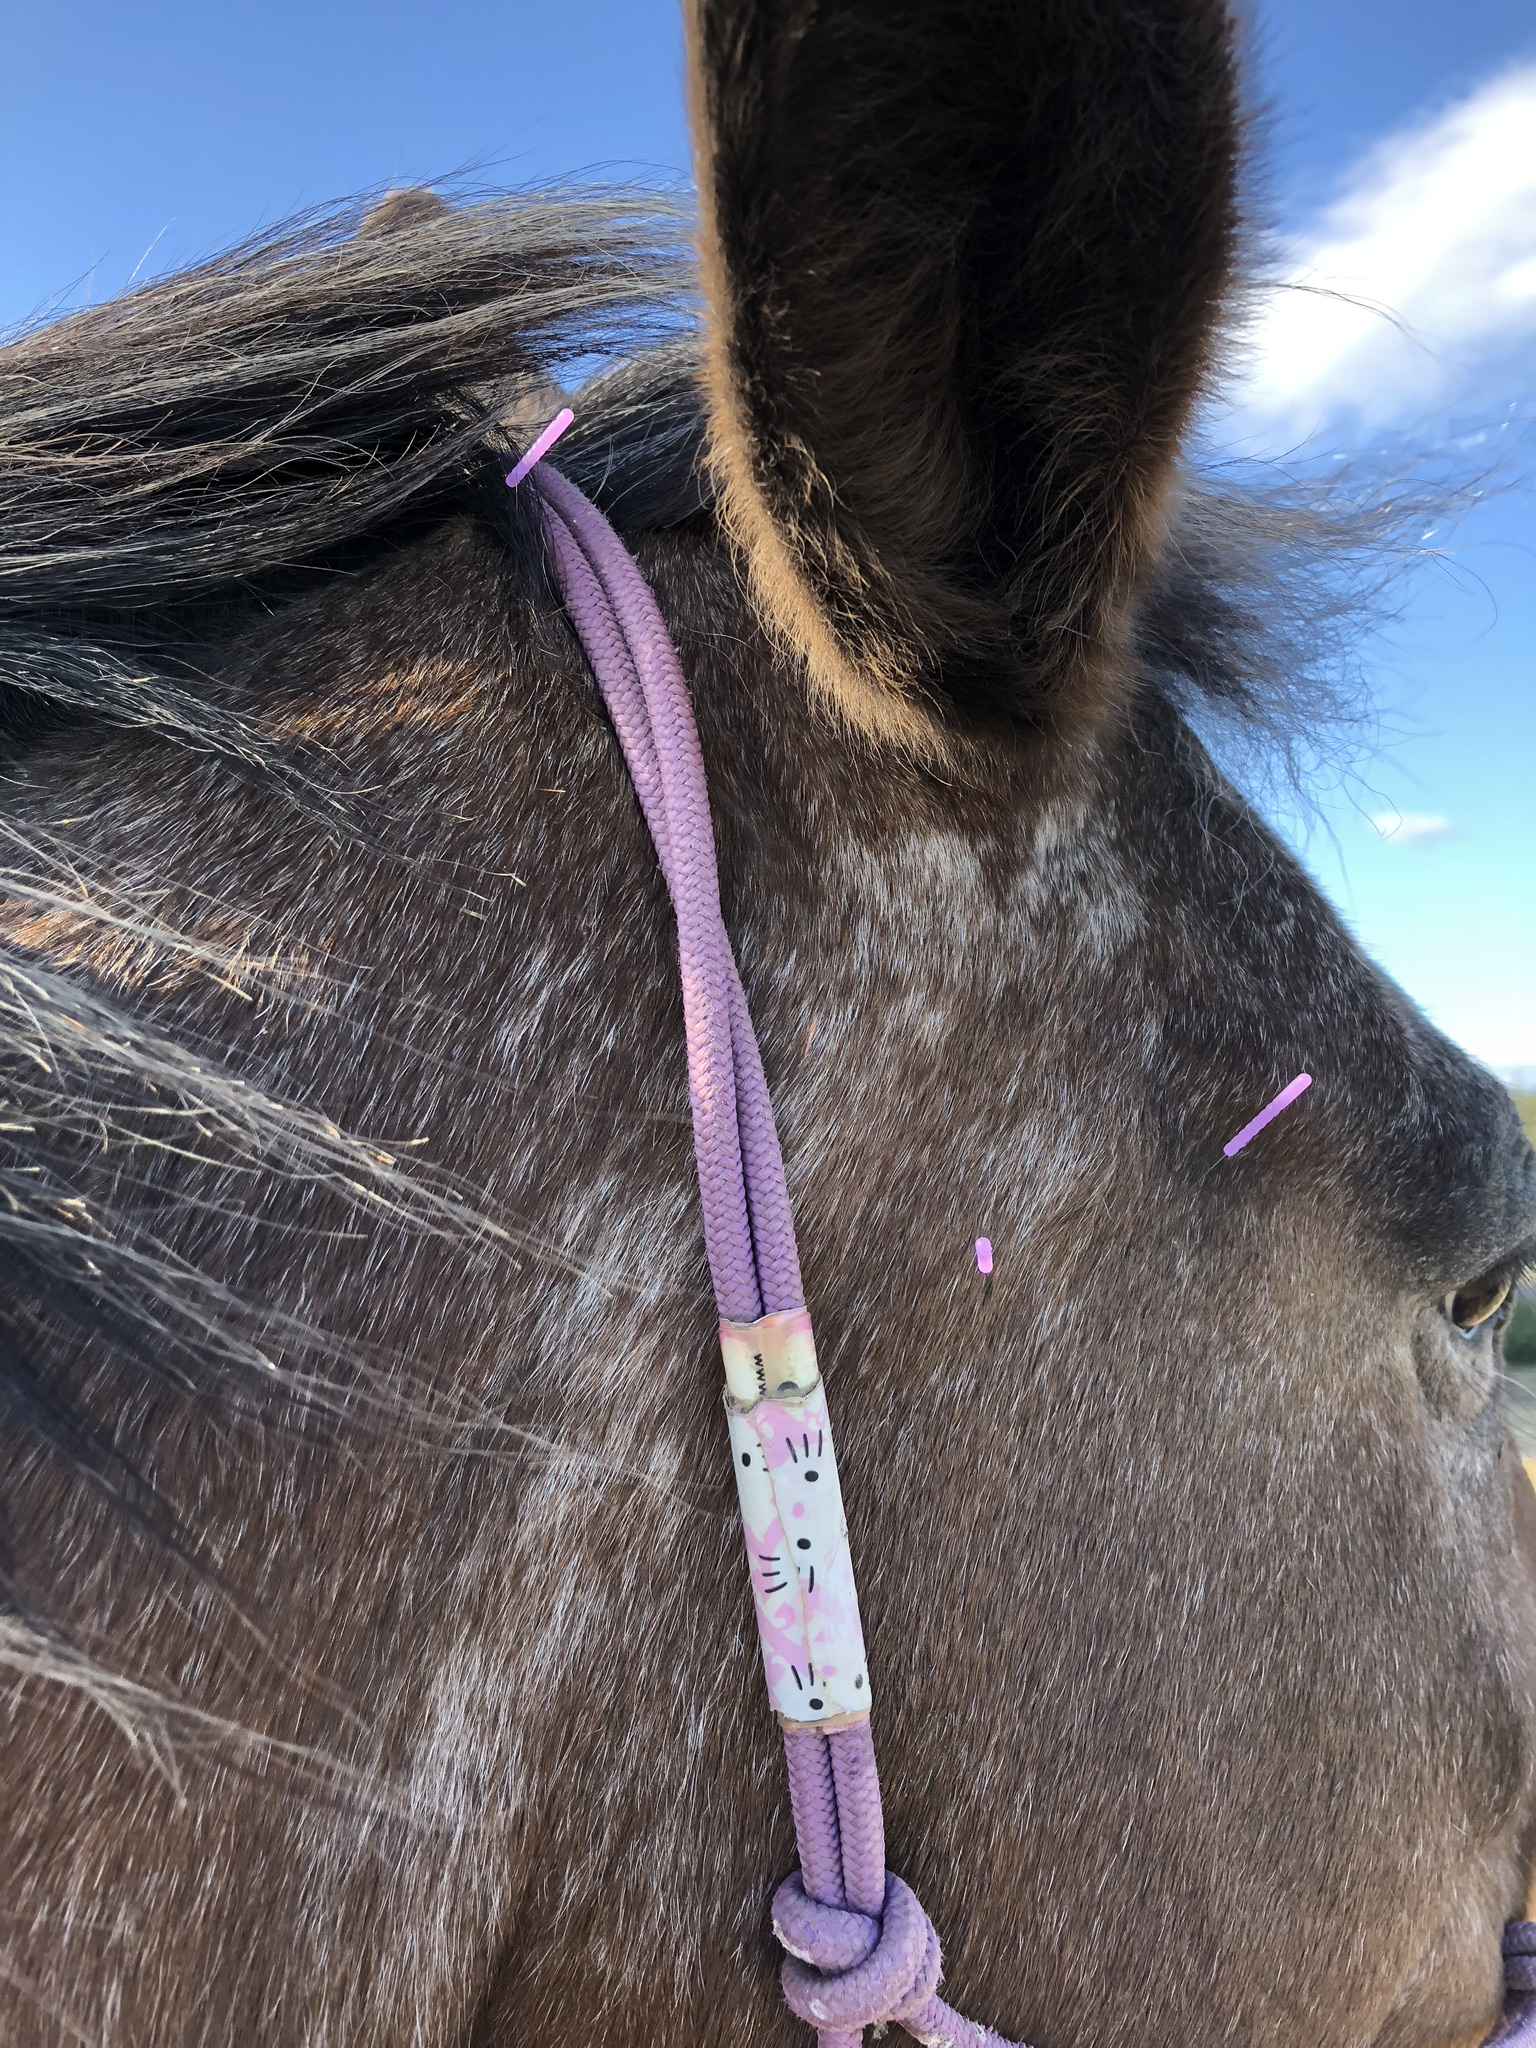 Muscle Imbalance and Pain in a 12 Year Old Quarter Horse